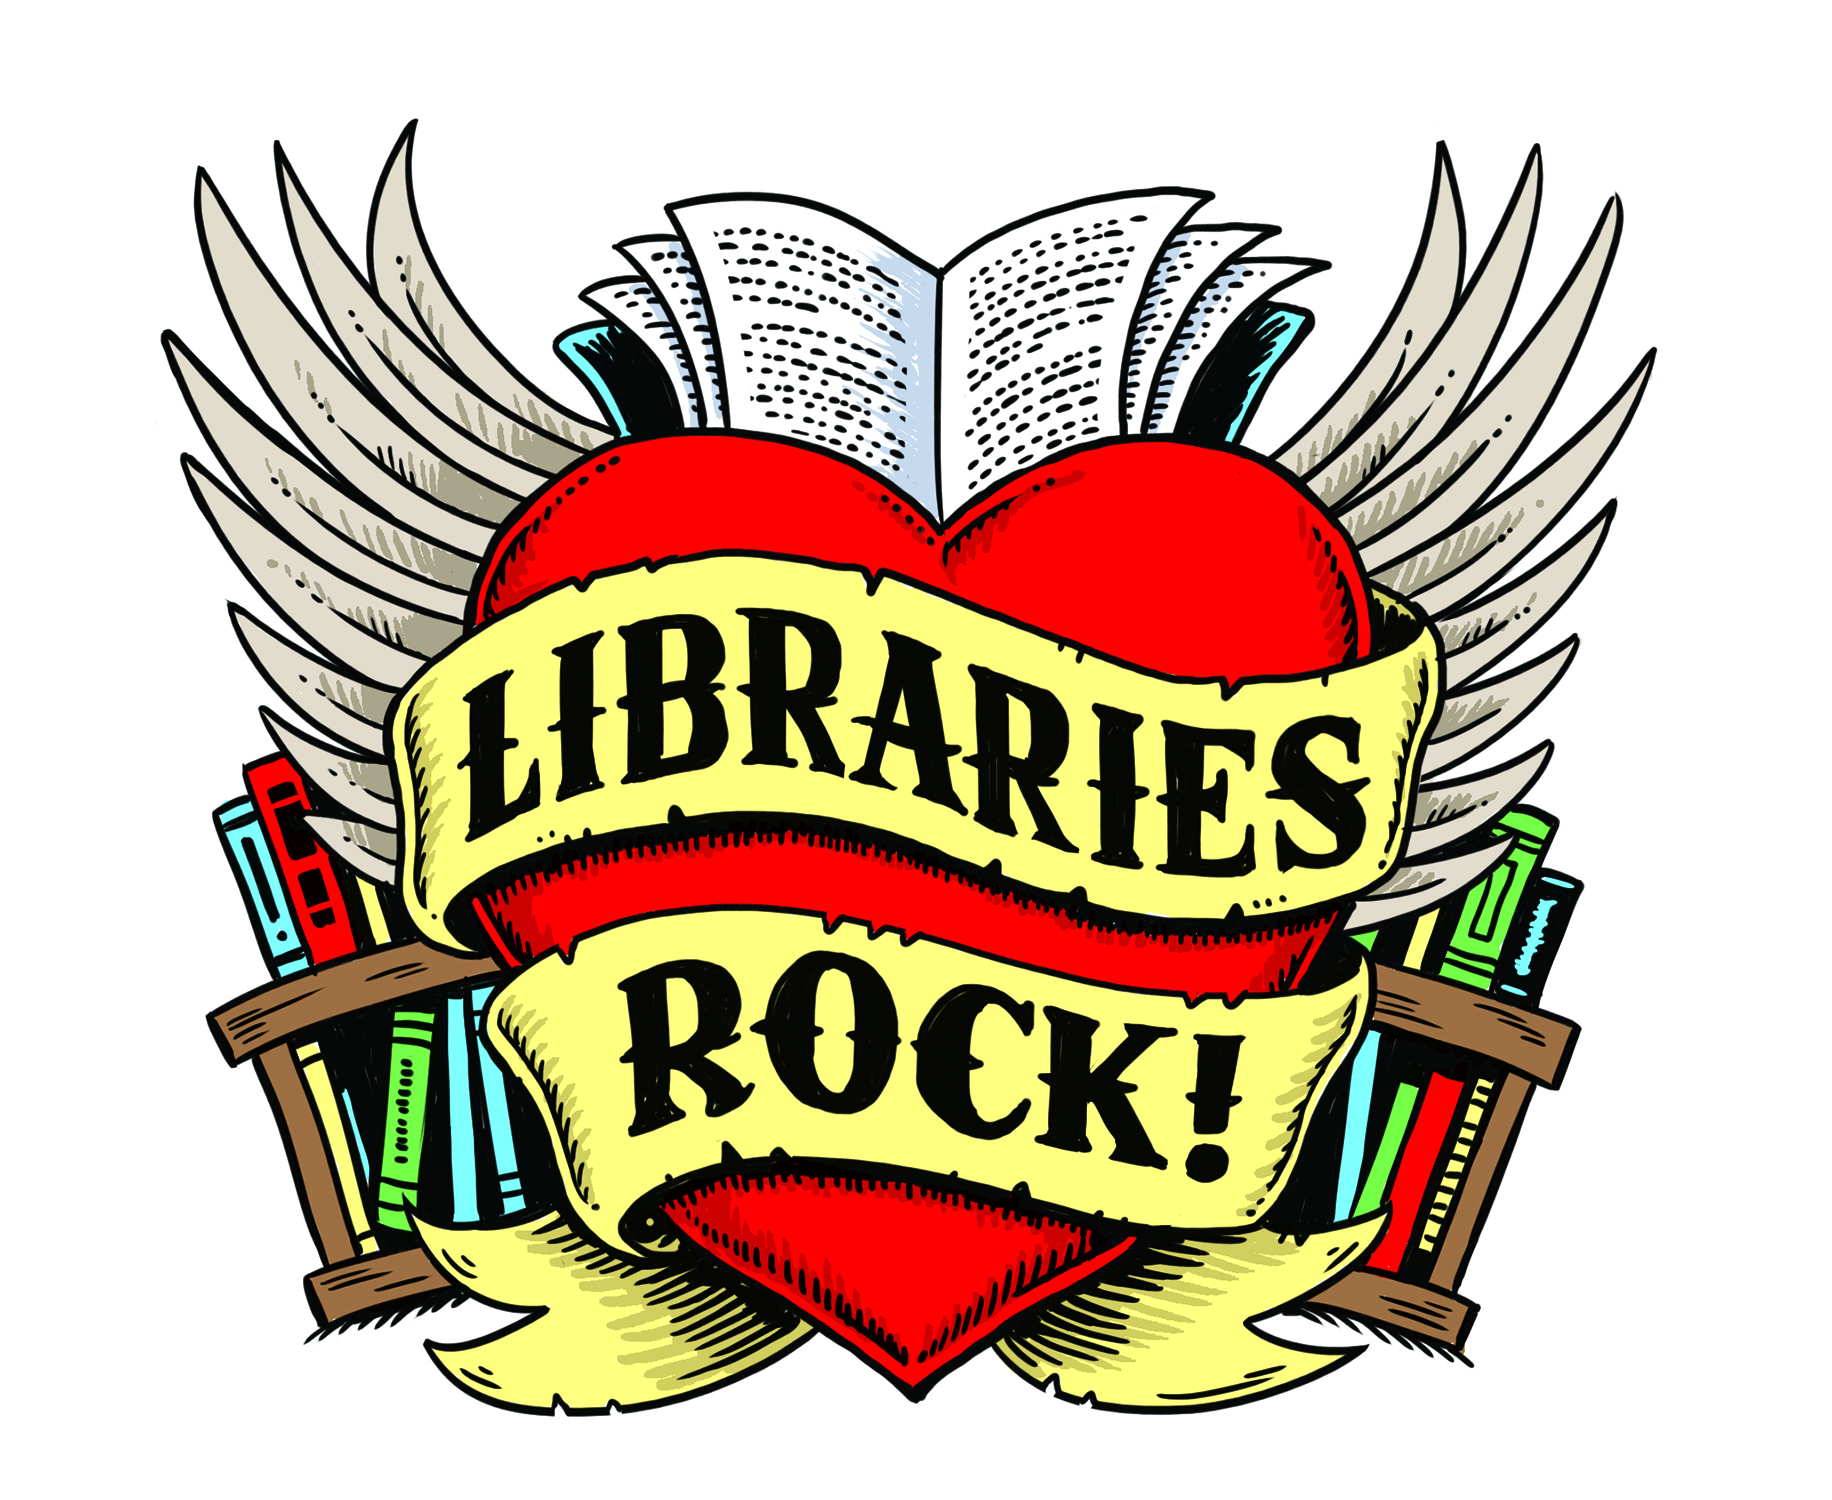 Libraries Rock! logo